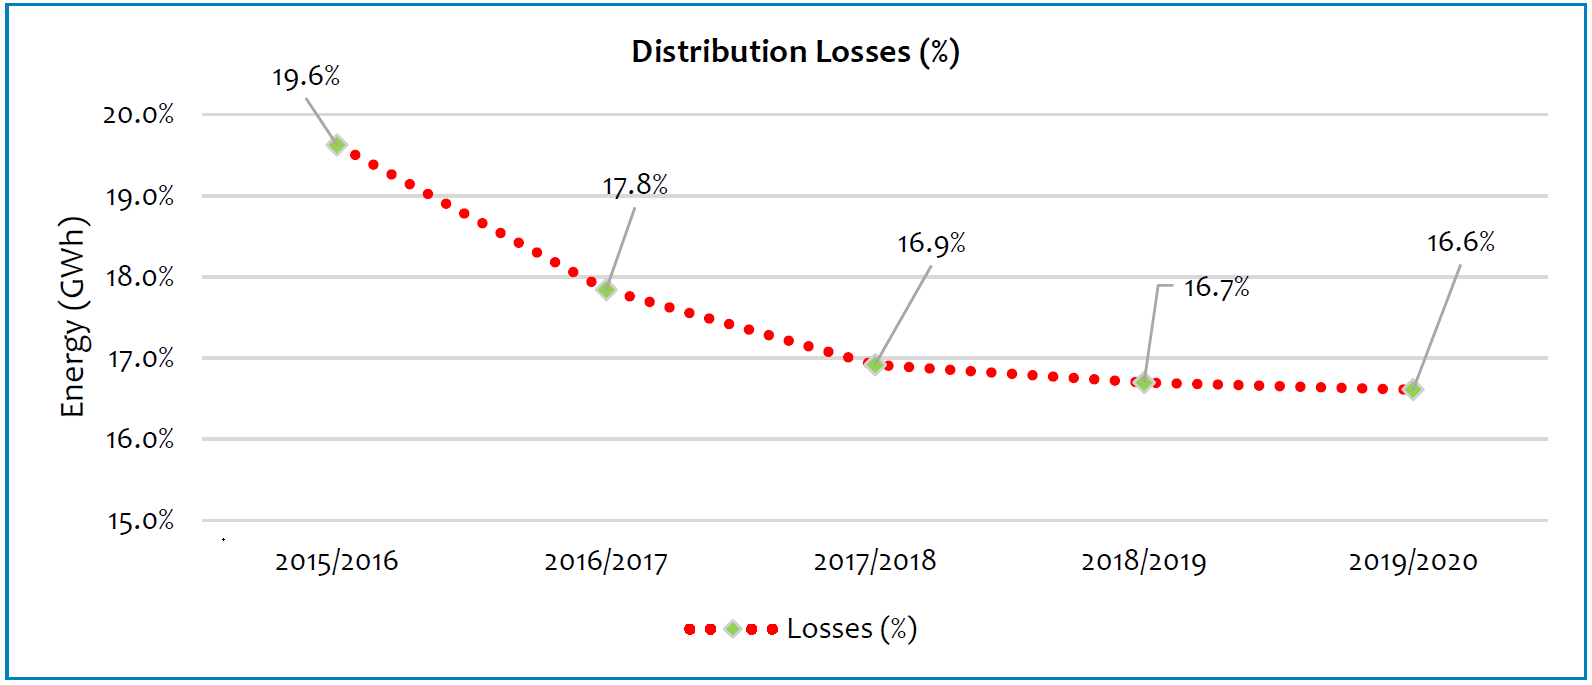 Efficiency improvement with regards to distribution losses